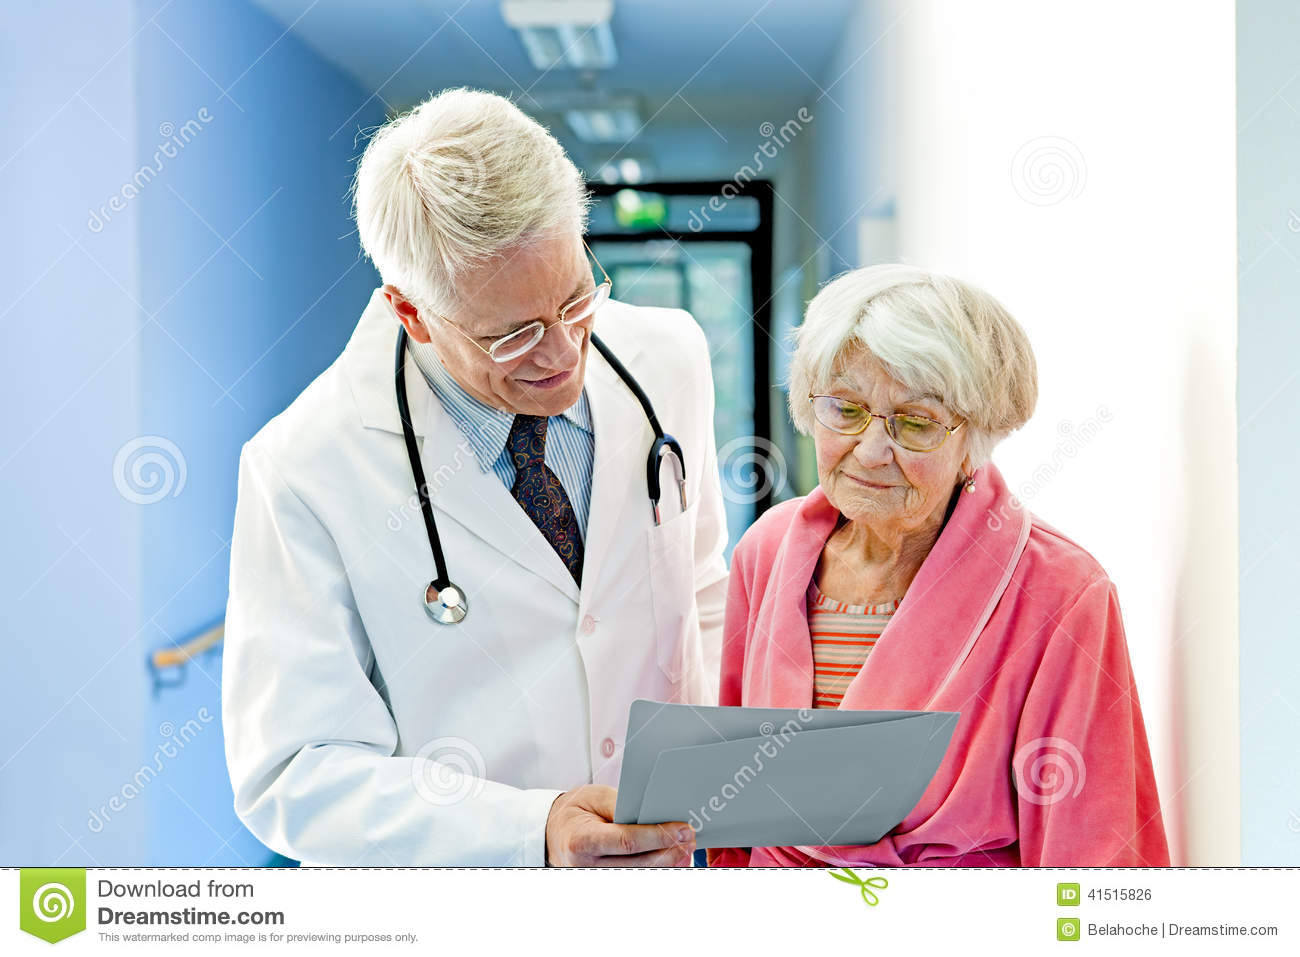 Doctor Shows Female Elderly Patient Results.